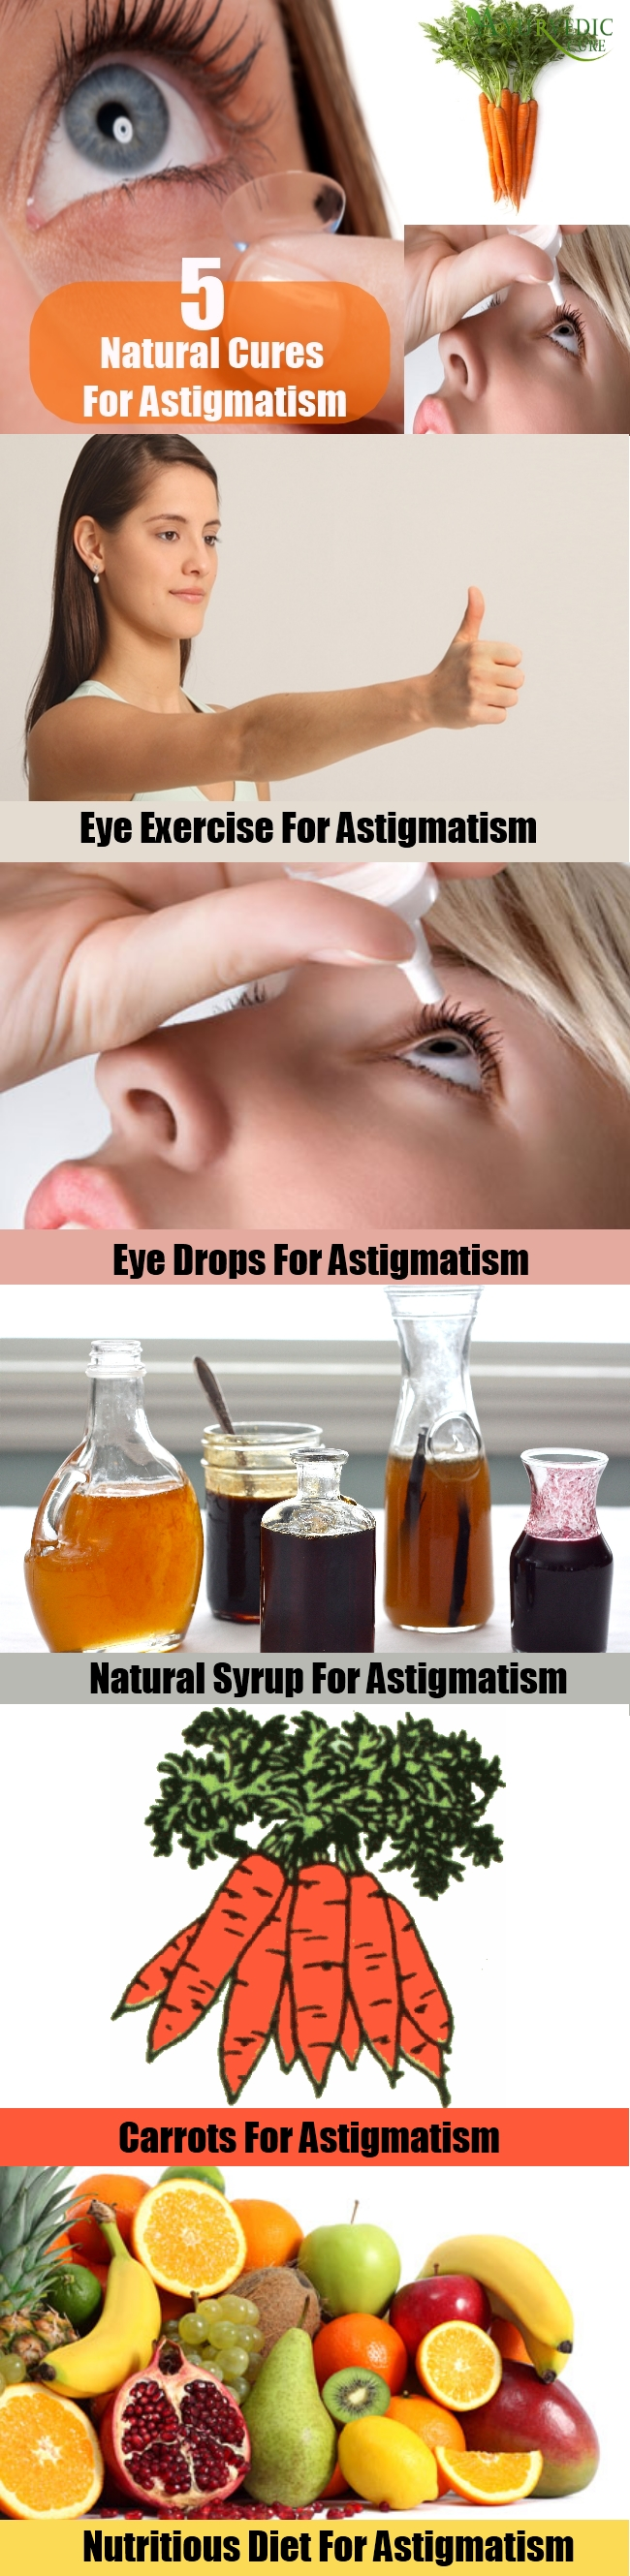 5 Natural Cures For Astigmatism